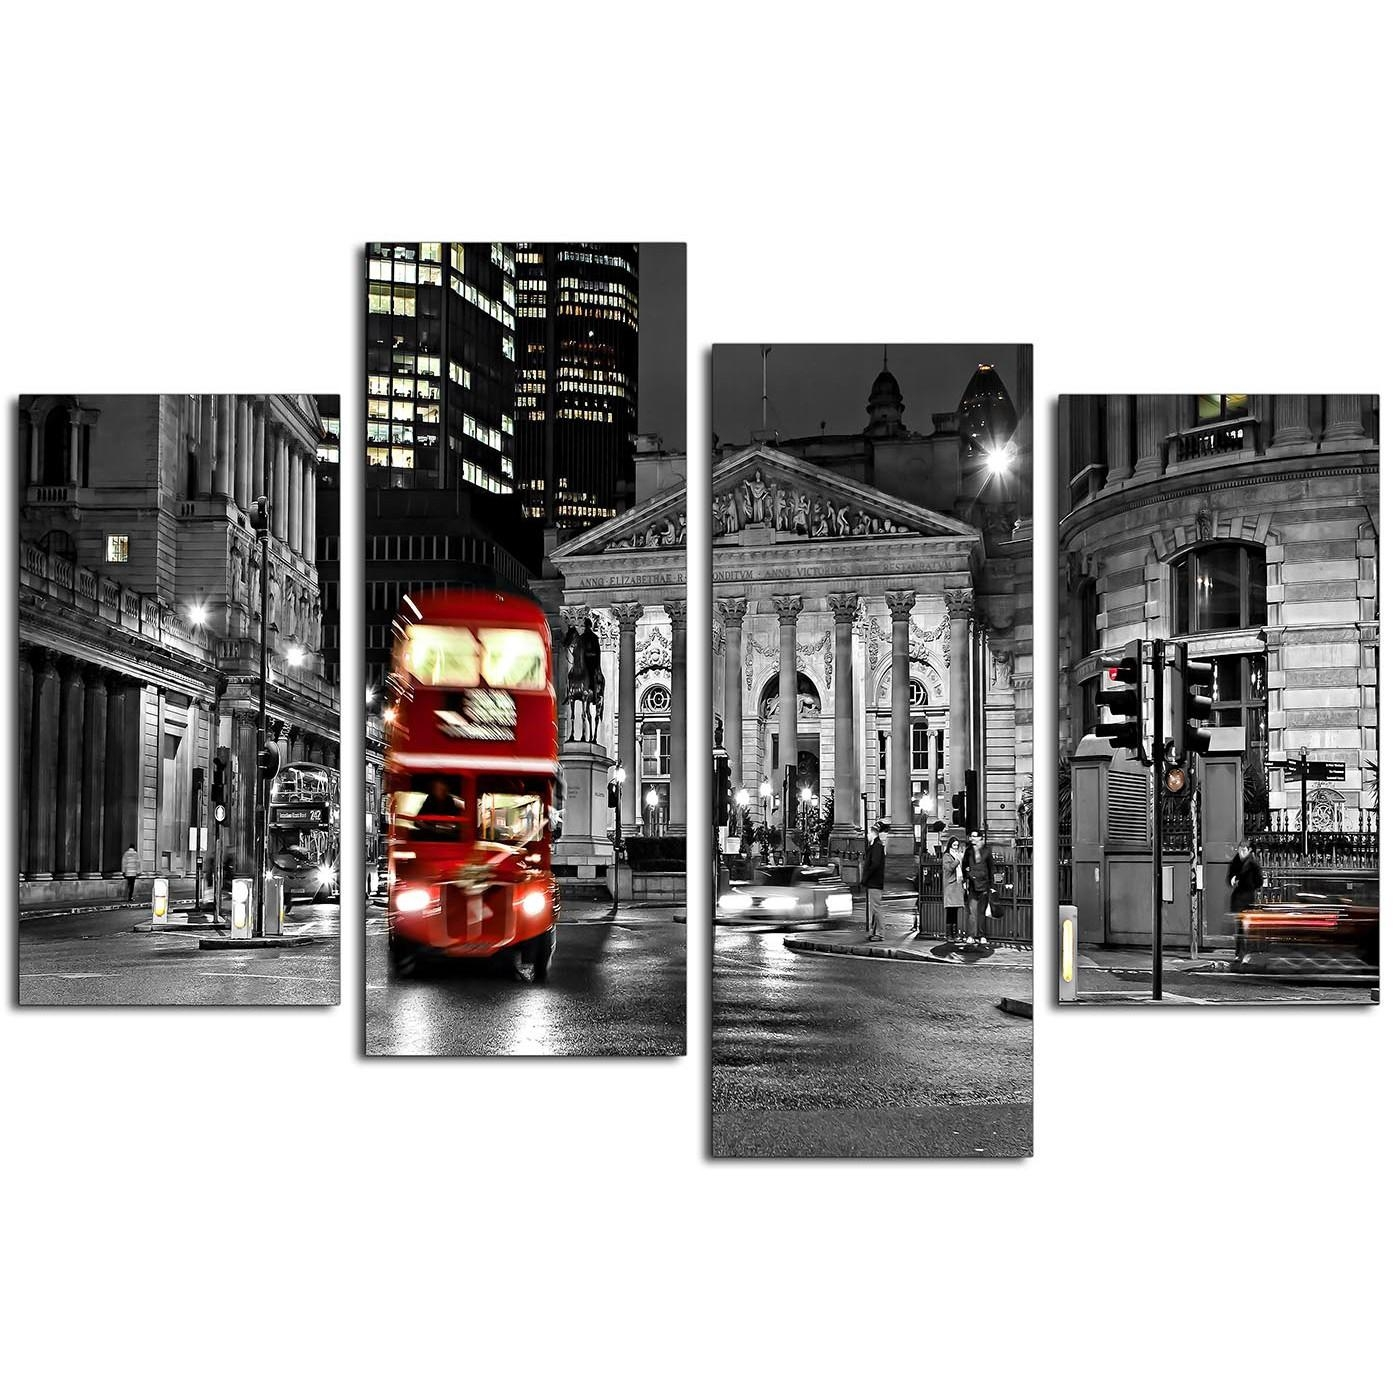 Canvas Prints Of A Red London Night Bus In Black And White Within Black And White Wall Art With Red (Image 9 of 20)